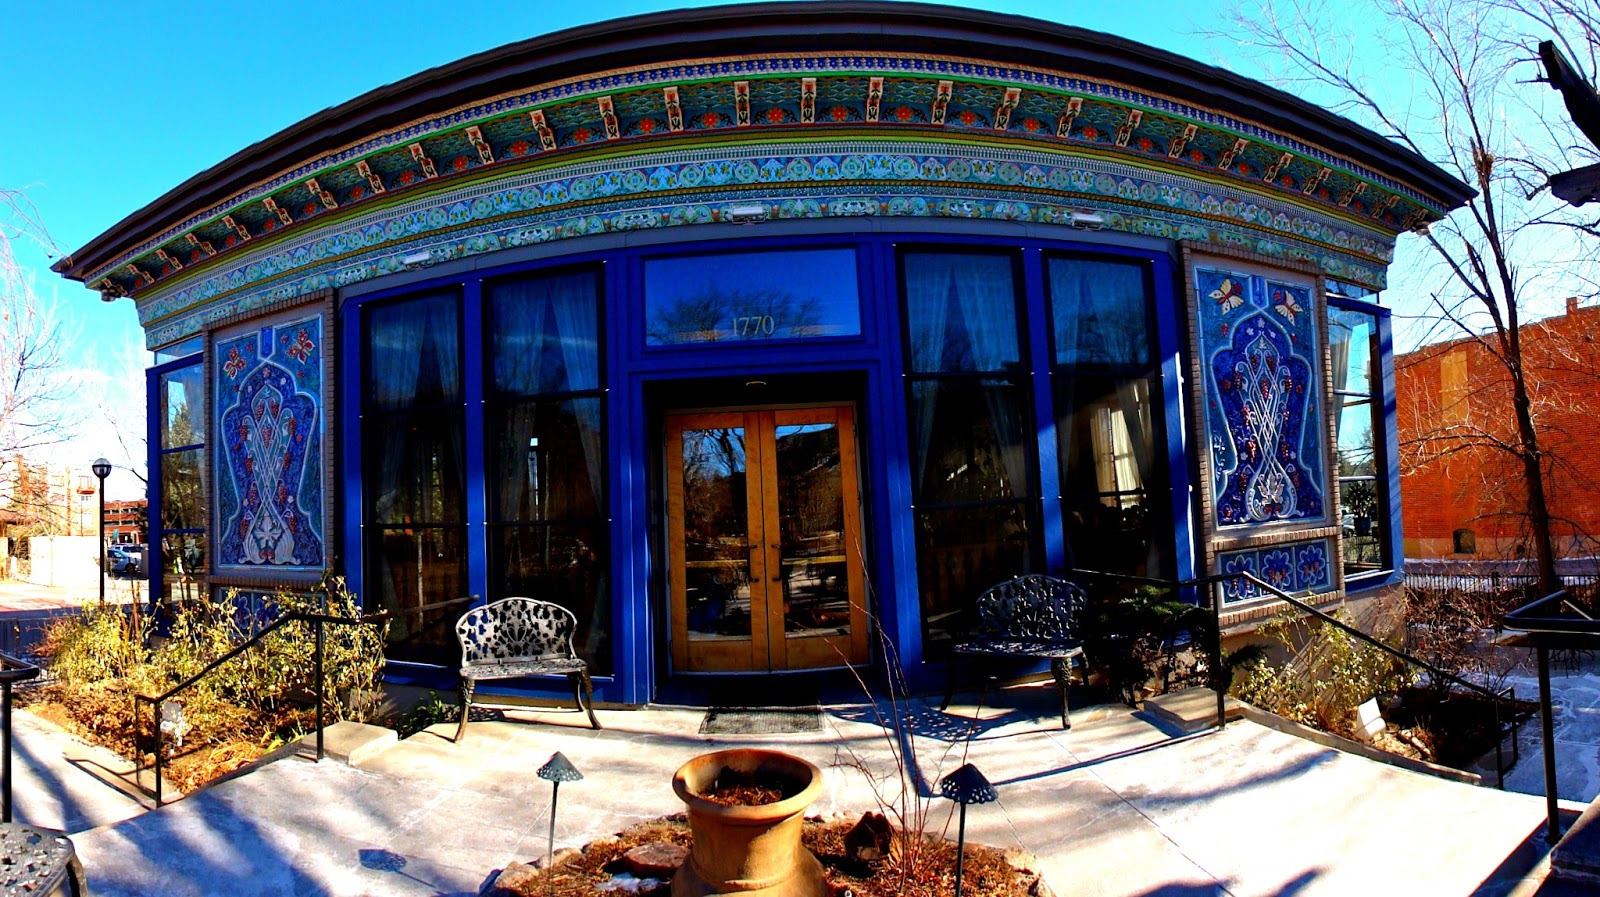 grain silo design, fusion design, tea room, winery design, family design, sidewalk design, asian design, irish design, international design, cast iron design, sauna design, southwestern design, hedge design, casino design, travel agency design, pavilion design, tea houses in new jersey, african design, construction design, japanese design, on tajik tea house designs